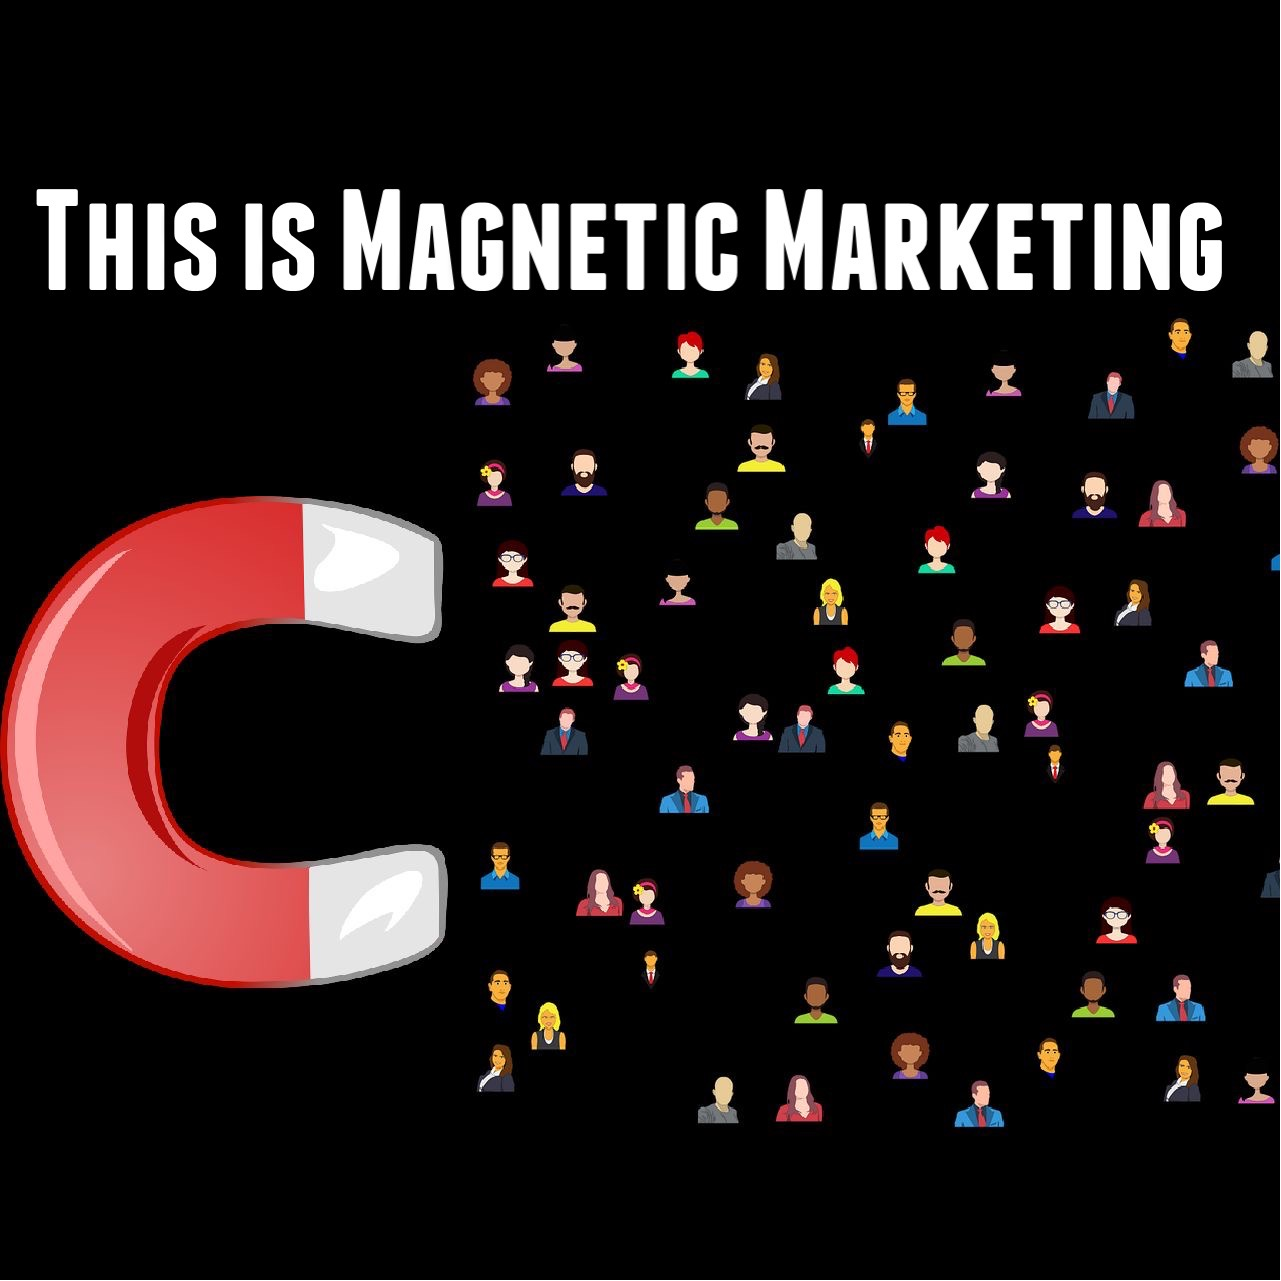 This is Magnetic Marketing